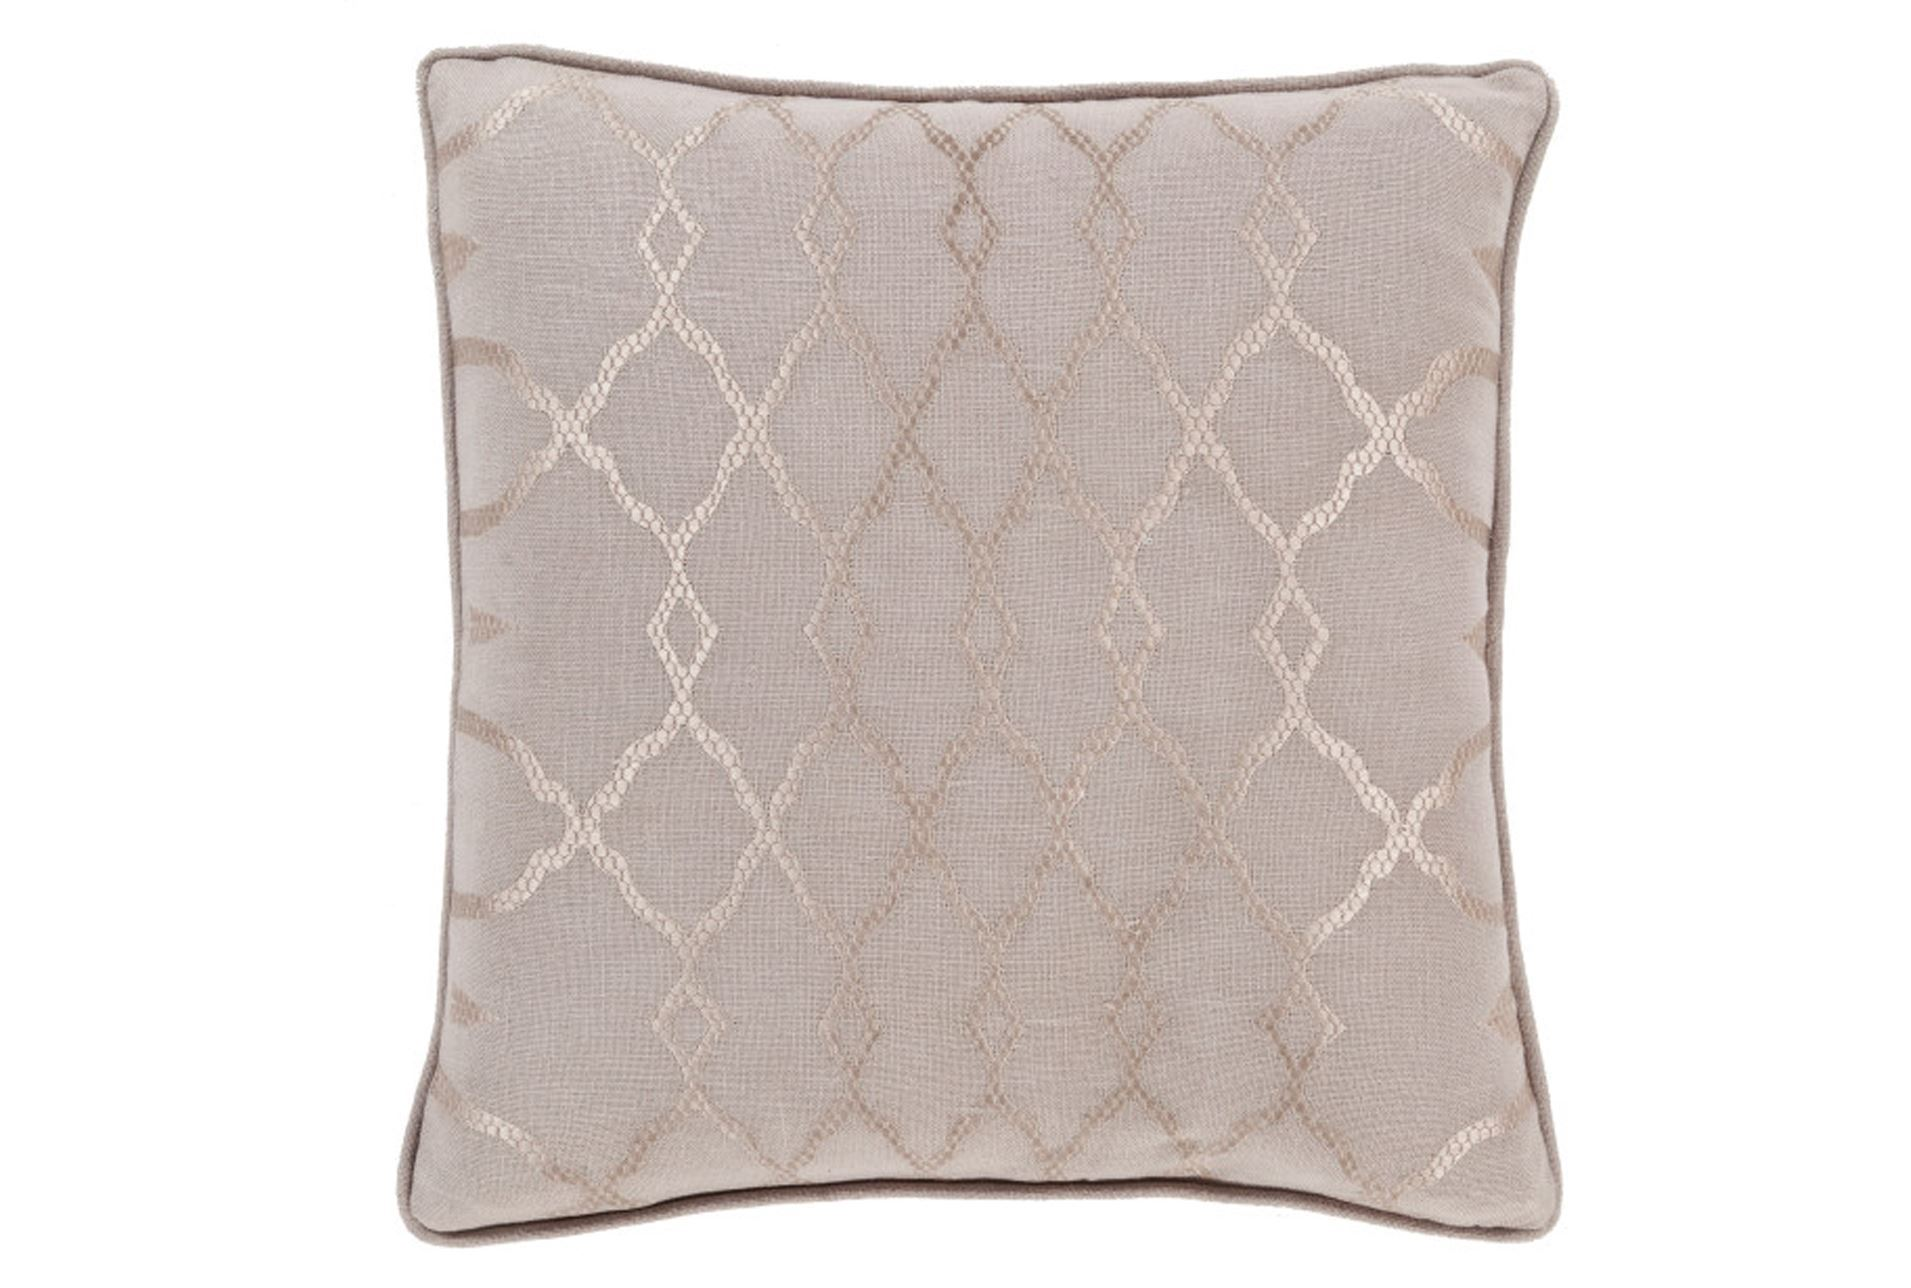 Decorative Pillows Living Spaces : Accent Pillow-Karissa Taupe 22X22 - Living Spaces